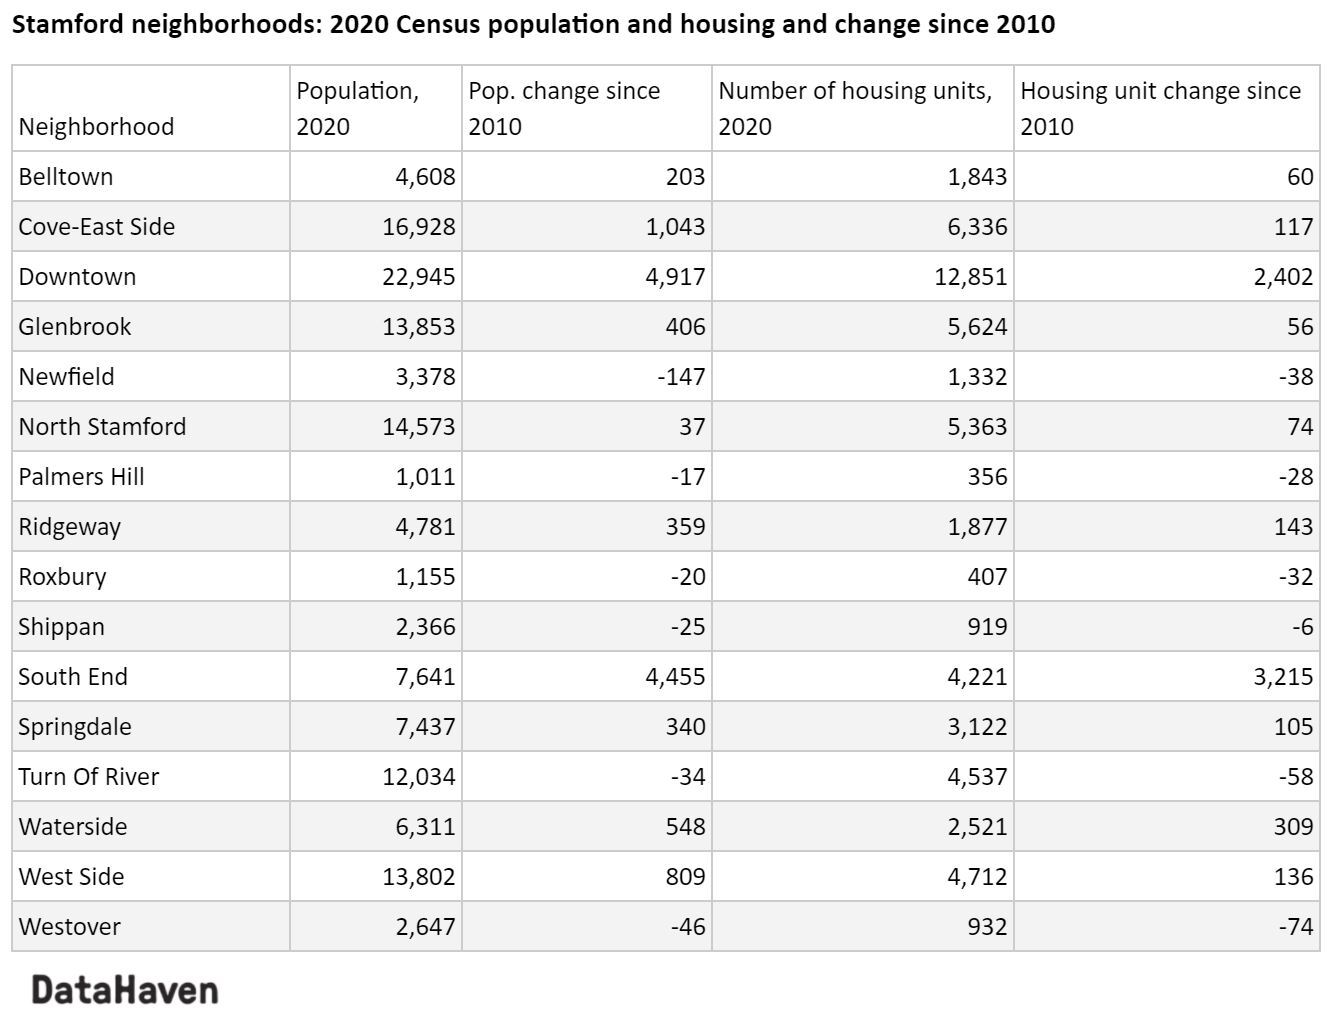 Changes in Stamford neighborhoods 2010 to 2020 census table